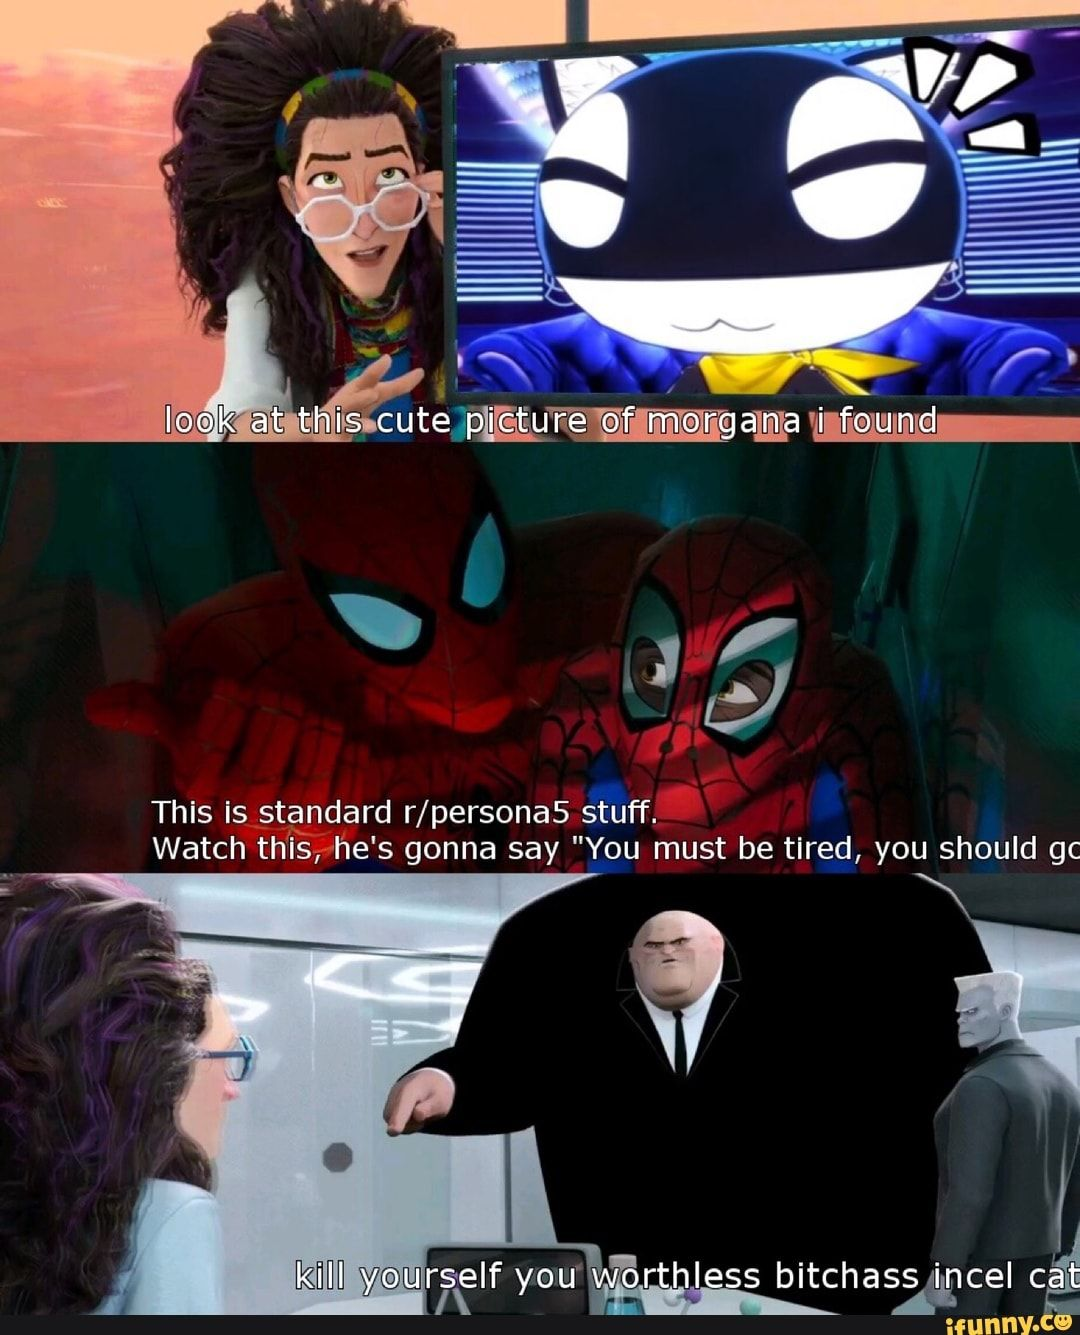 This Is stªndard r/persona5 stuff. Watch th'IsThe's gonna